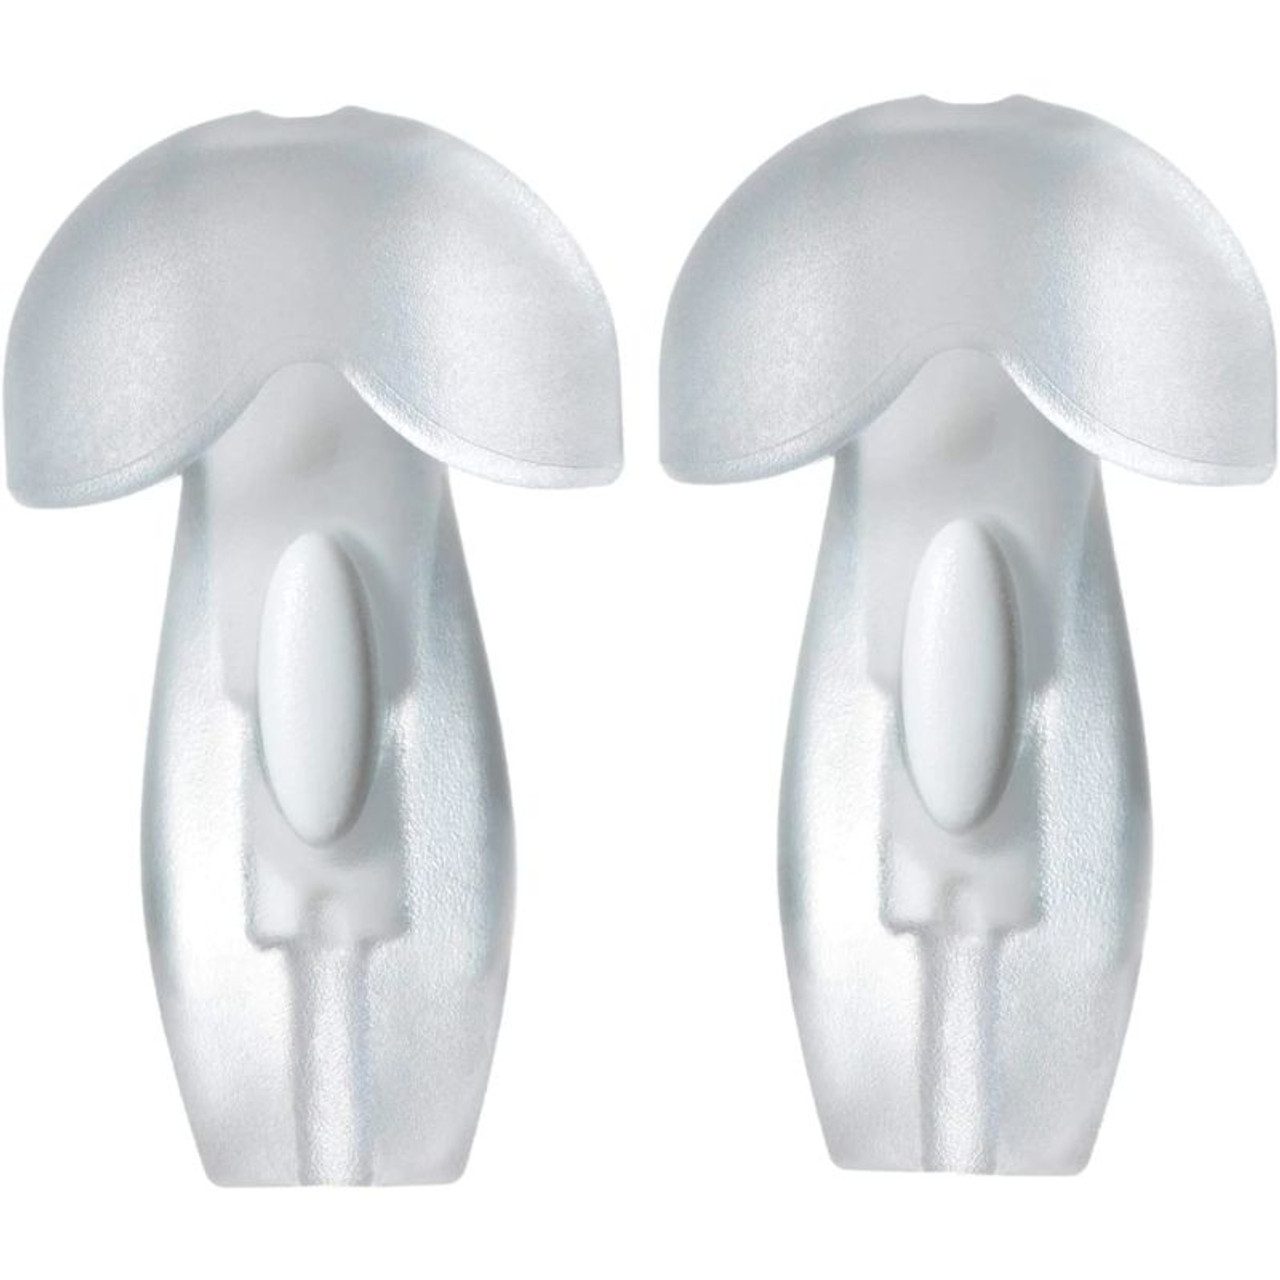 Happy Ears Reusable Natural Sound Ear Plugs - Version 2.0